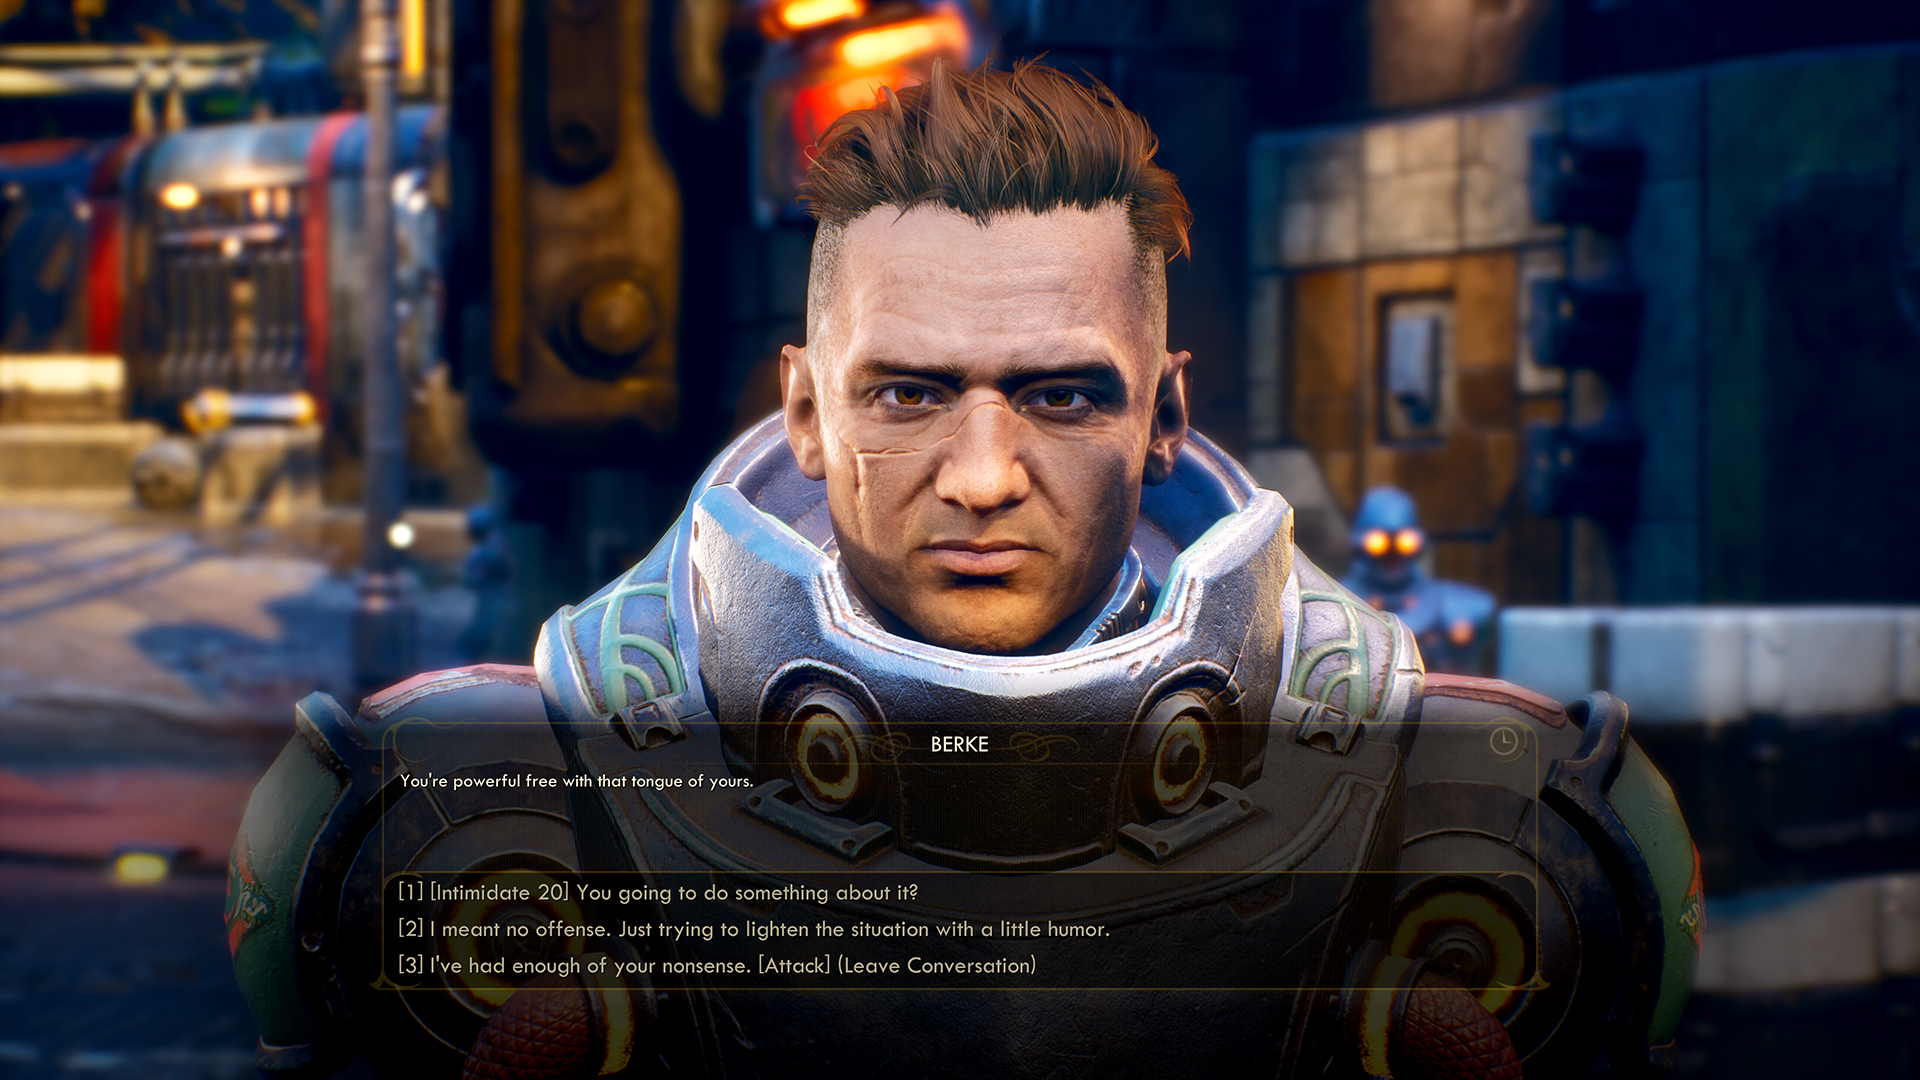 Obsidian: The Outer Worlds Is The Game We've Been Wanting to Make